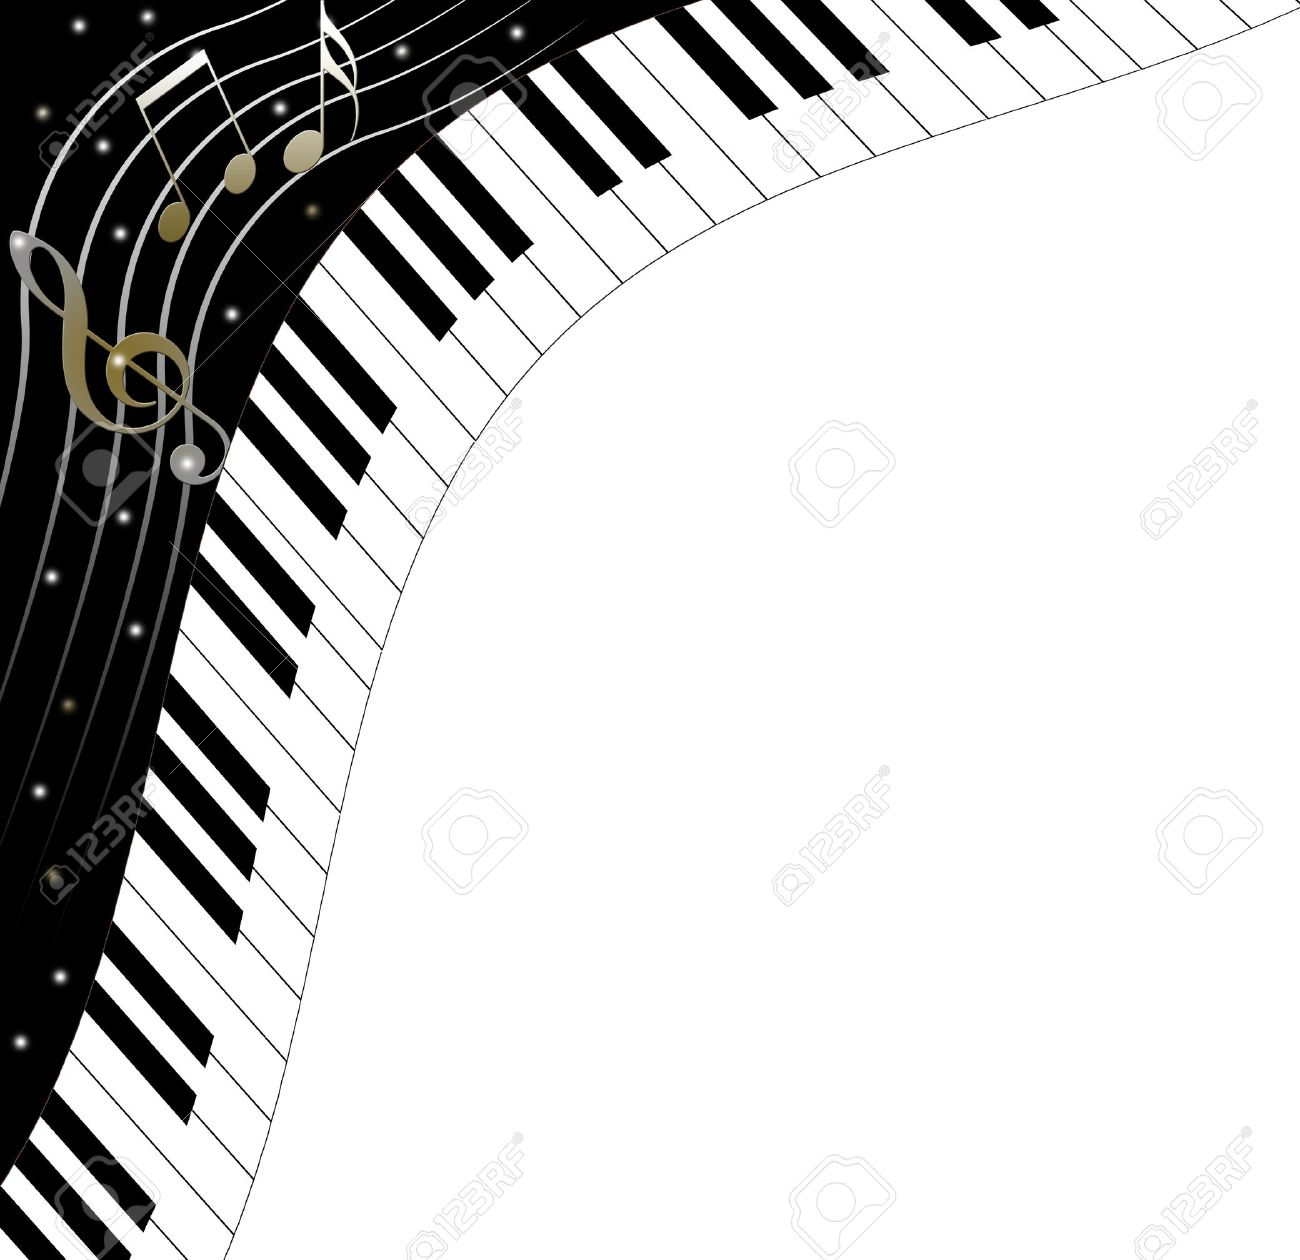 Music text frame piano keys Stock Photo - 15502455